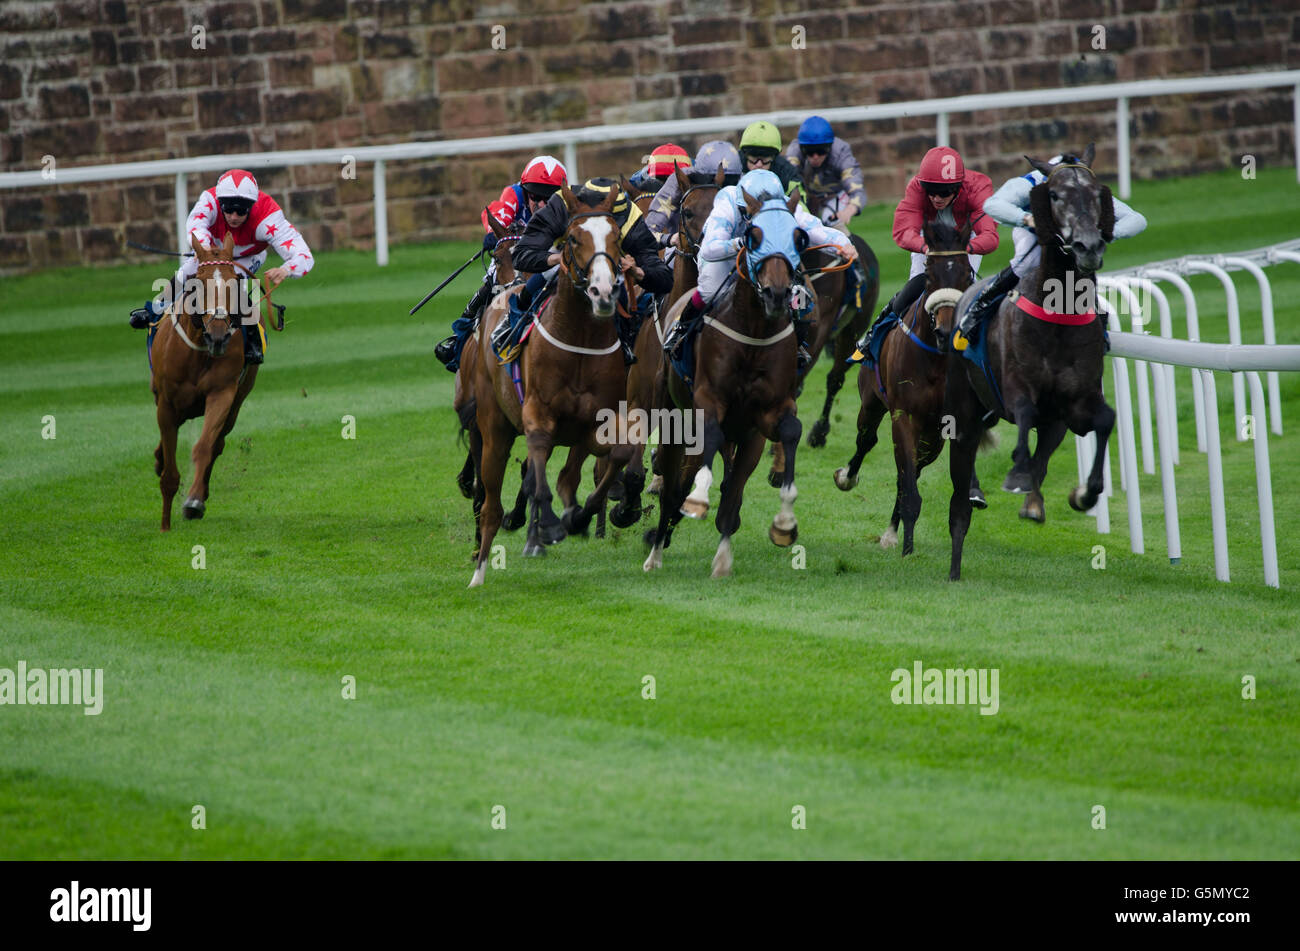 Horse racing in Chester 11th June 2016. - Stock Image